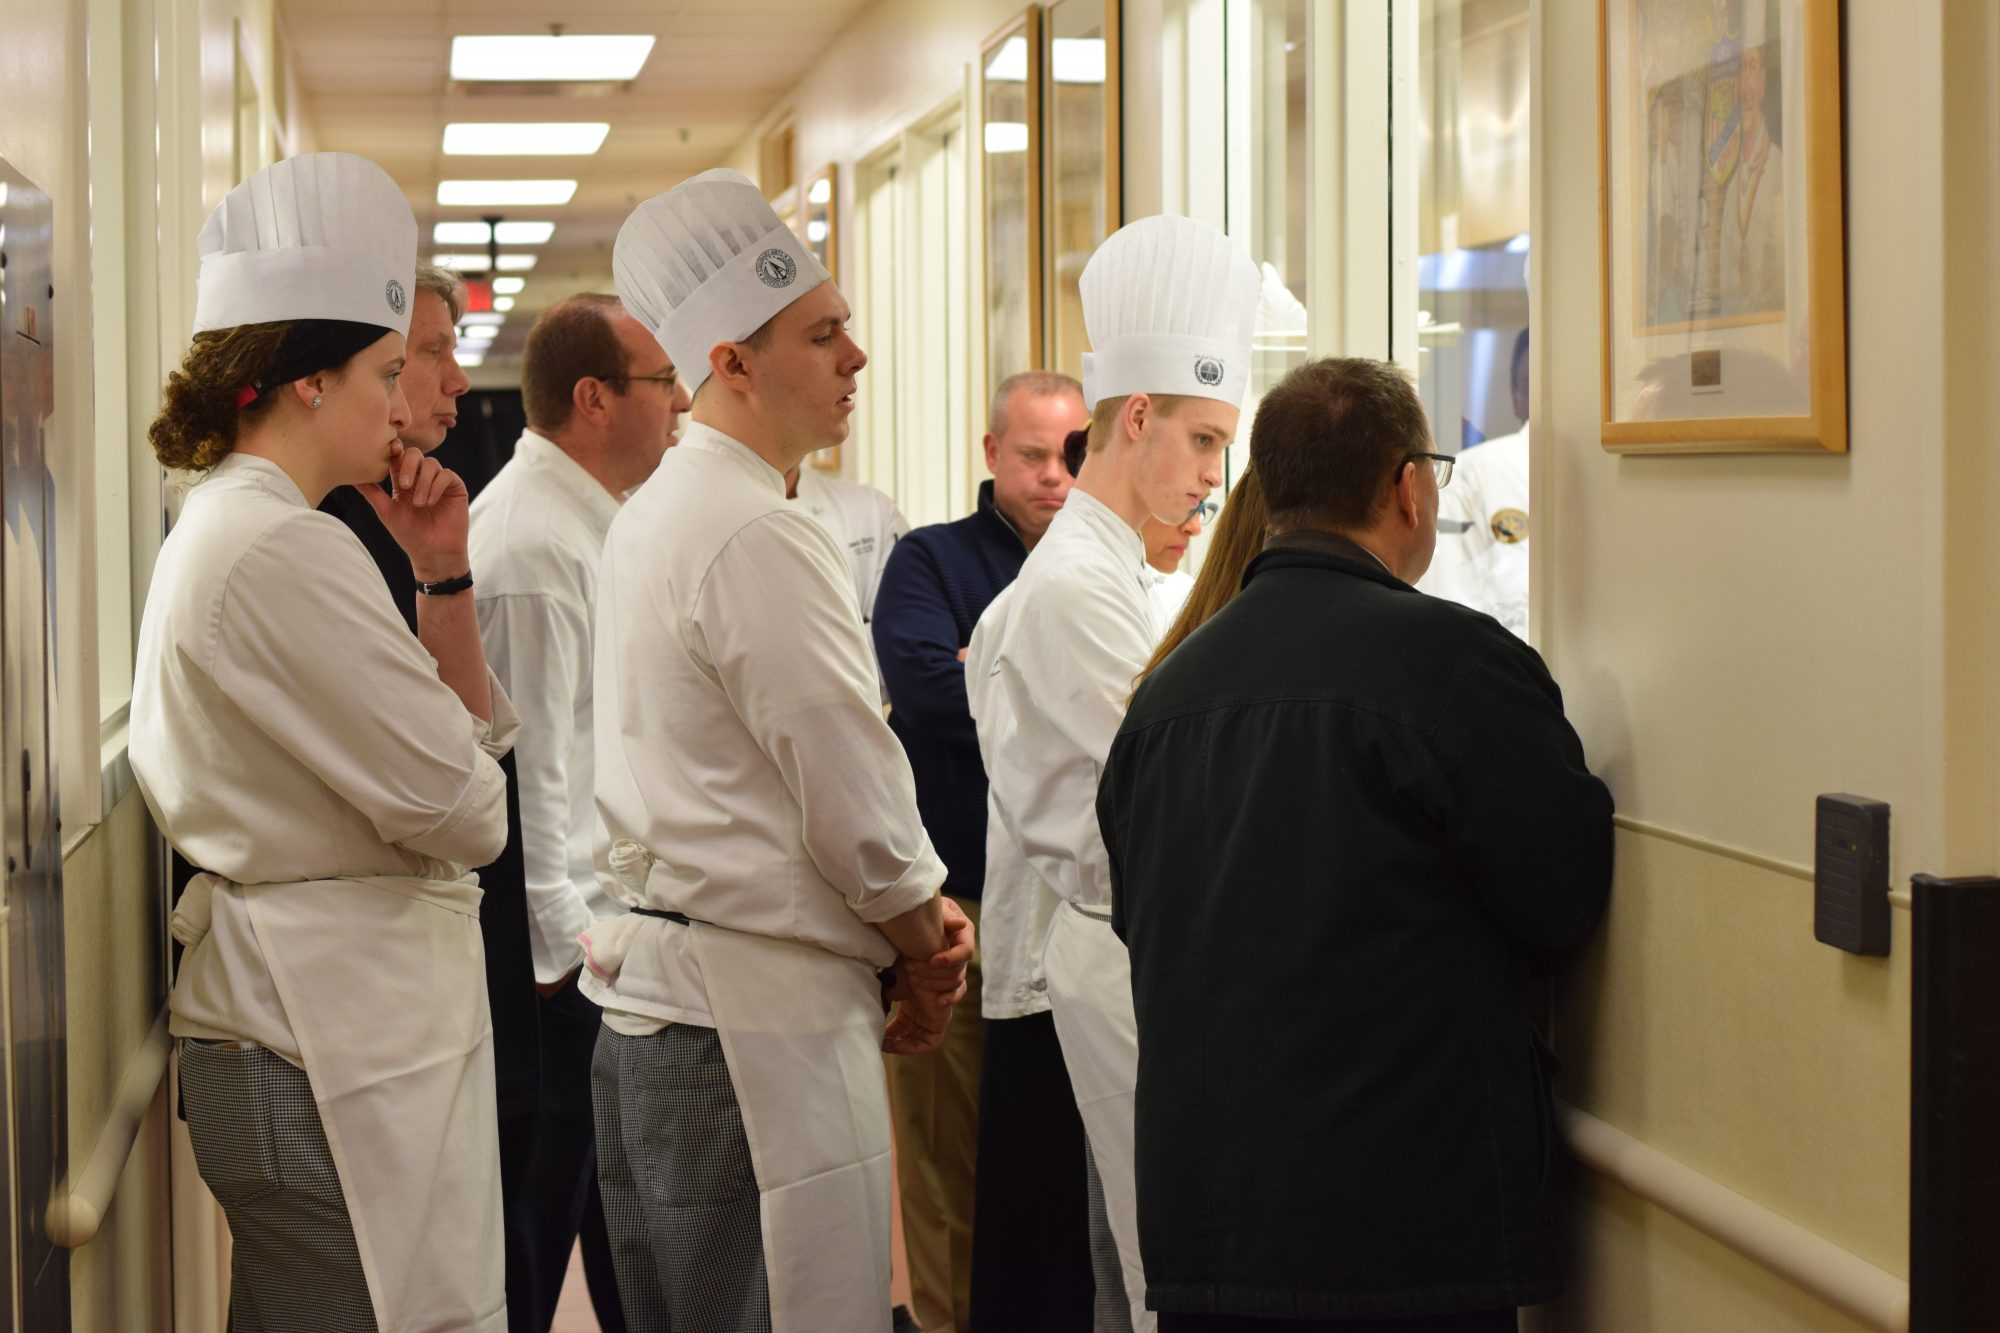 This Week, Four Chefs Began a Grueling Eight-Day Exam. Only One Remains